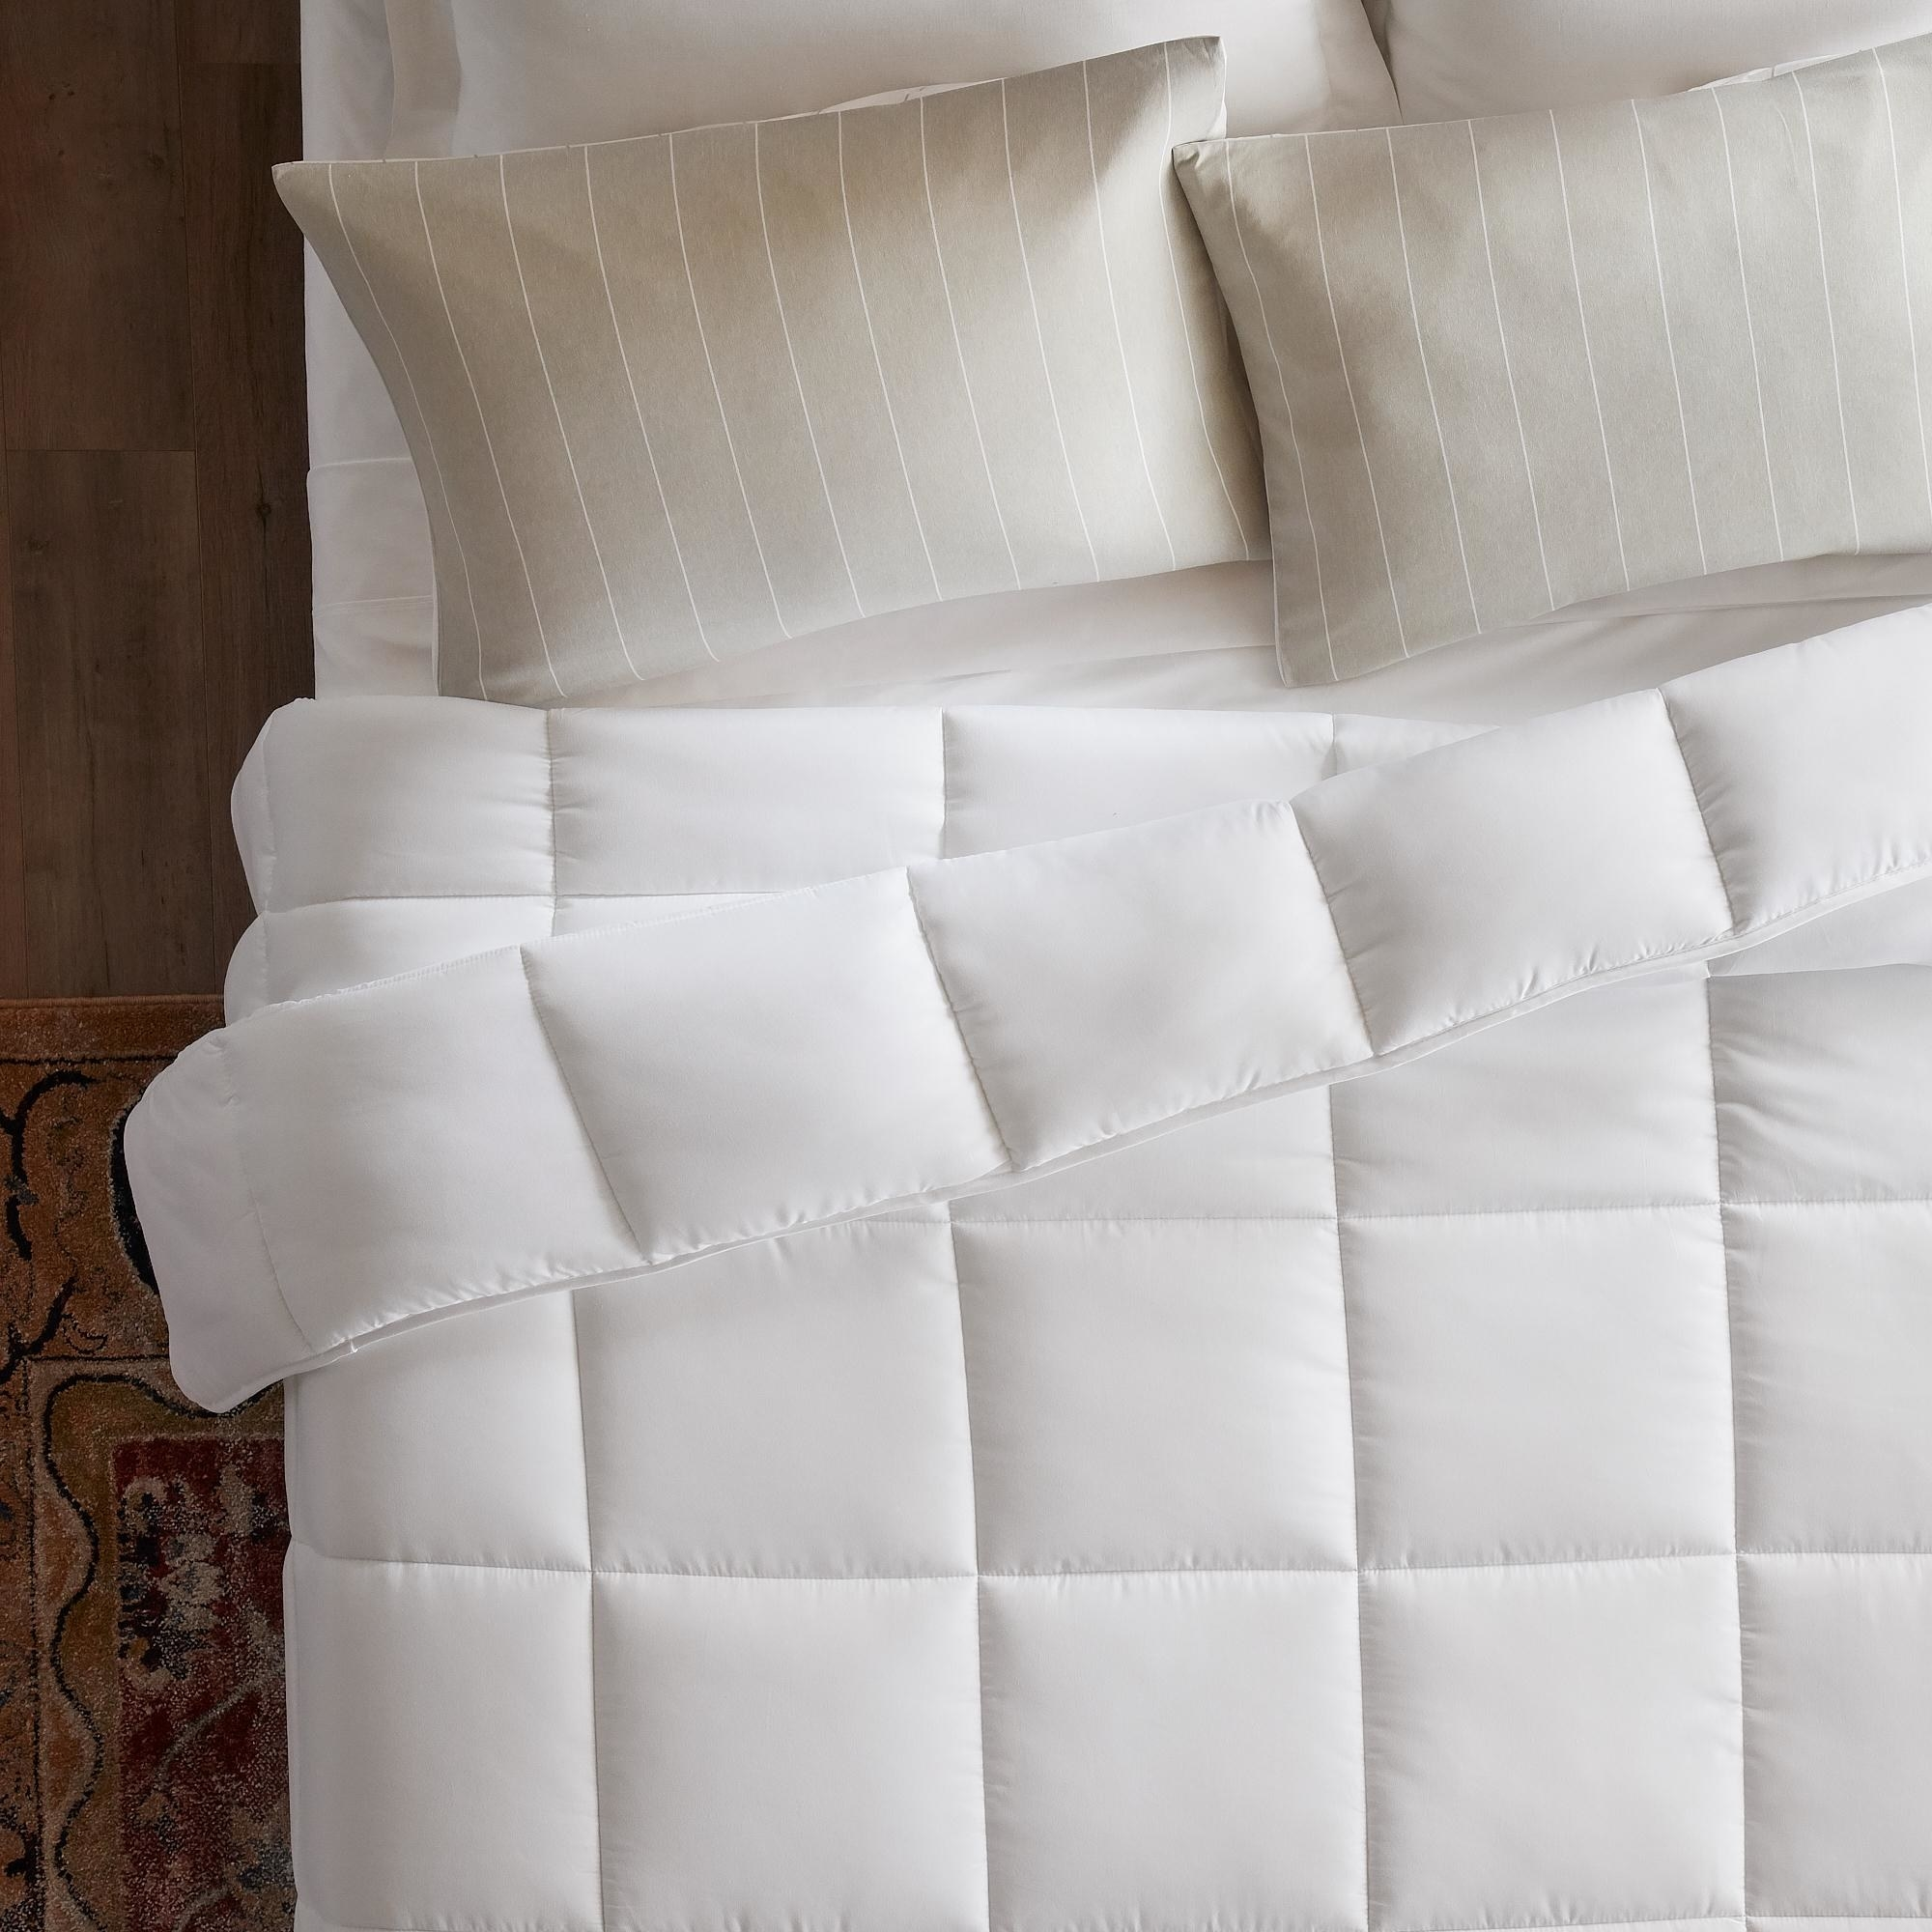 A white comforter on a bed